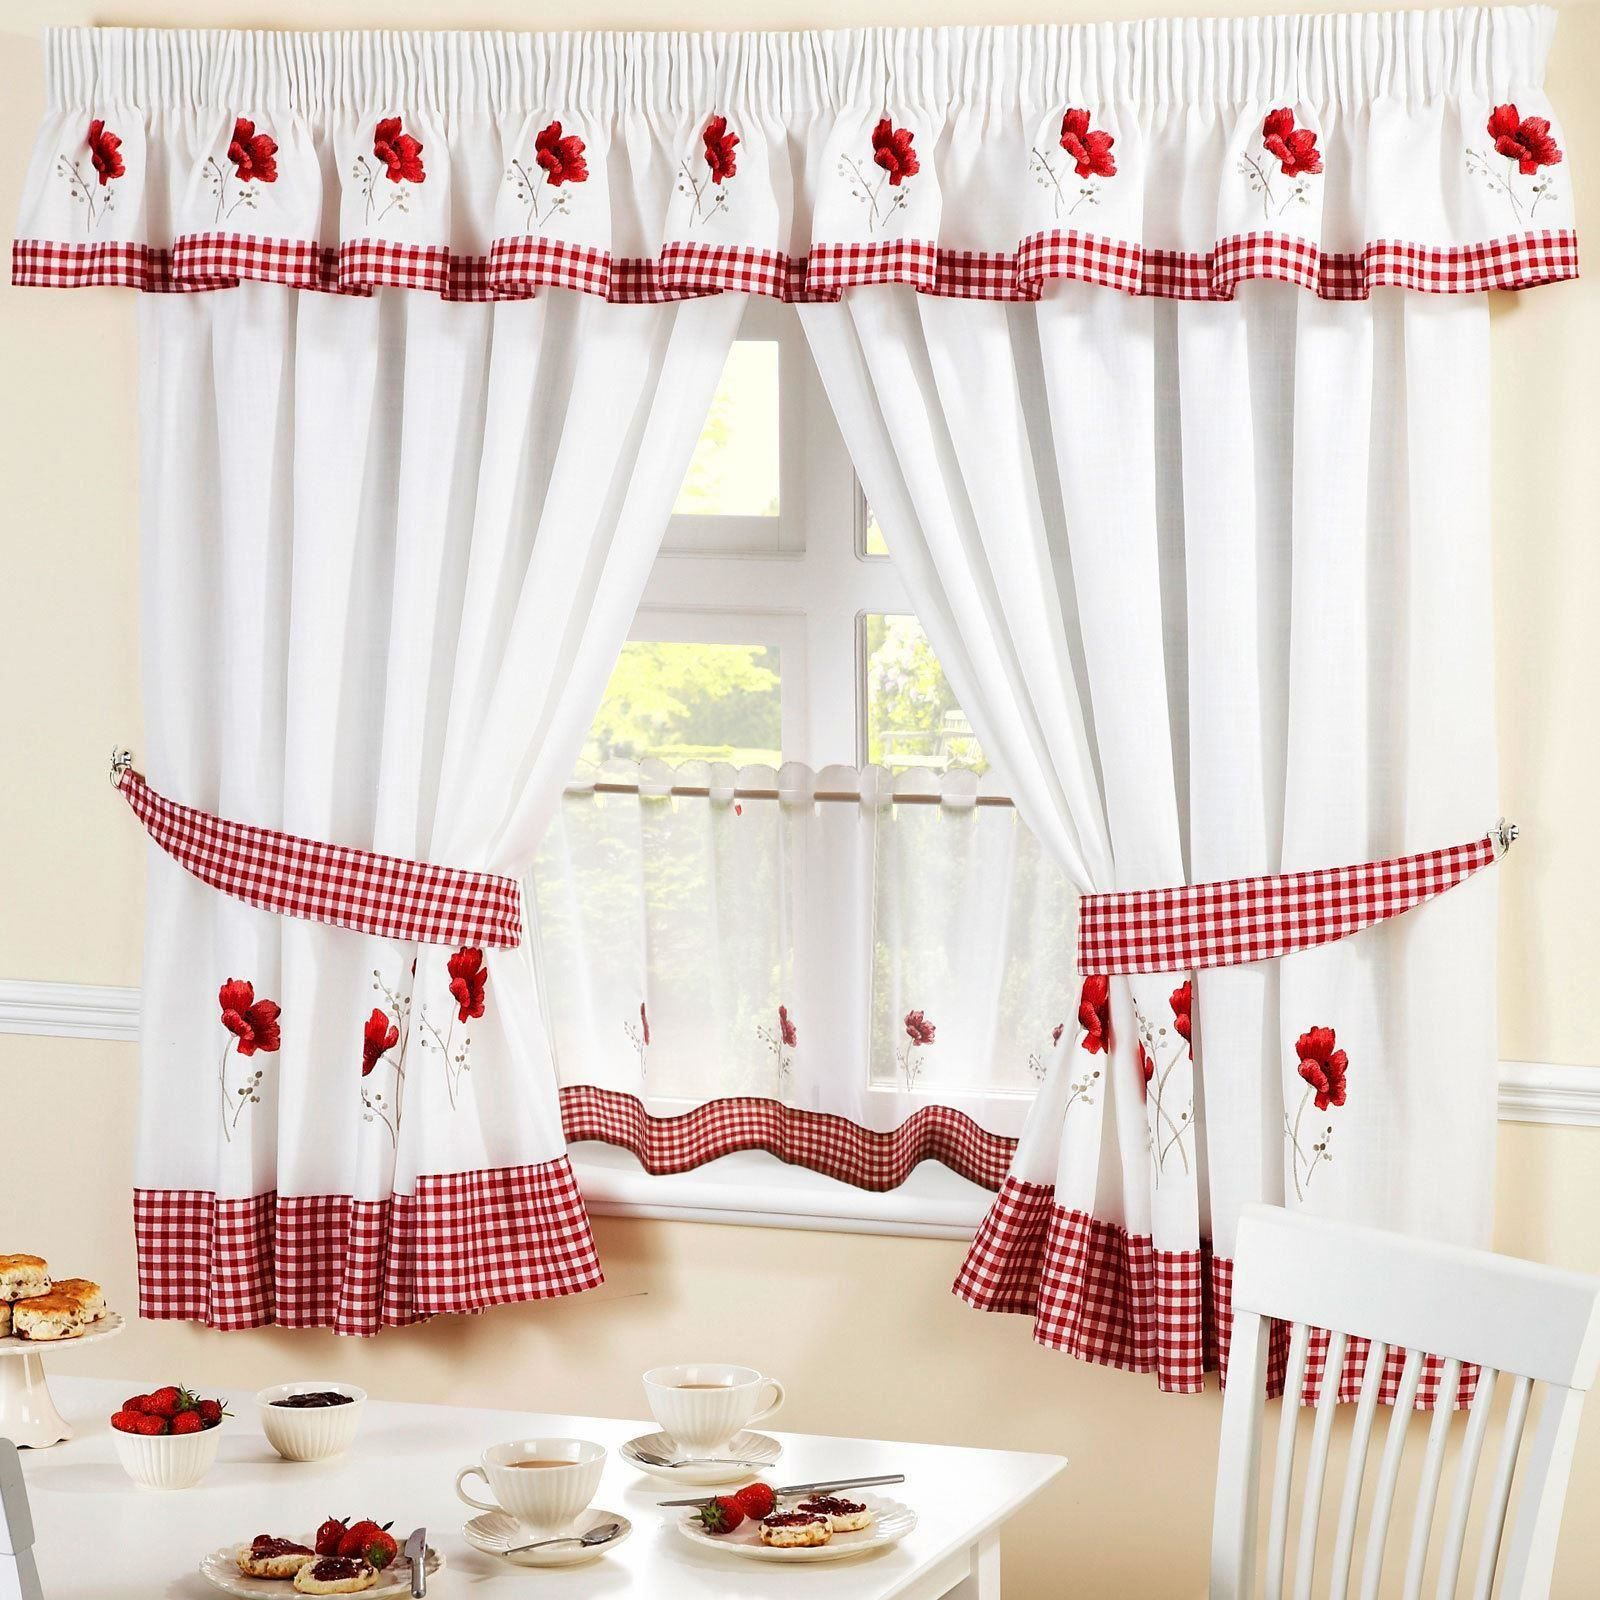 Poppies red embroidered kitchen curtains pelmet u ud cafe panel